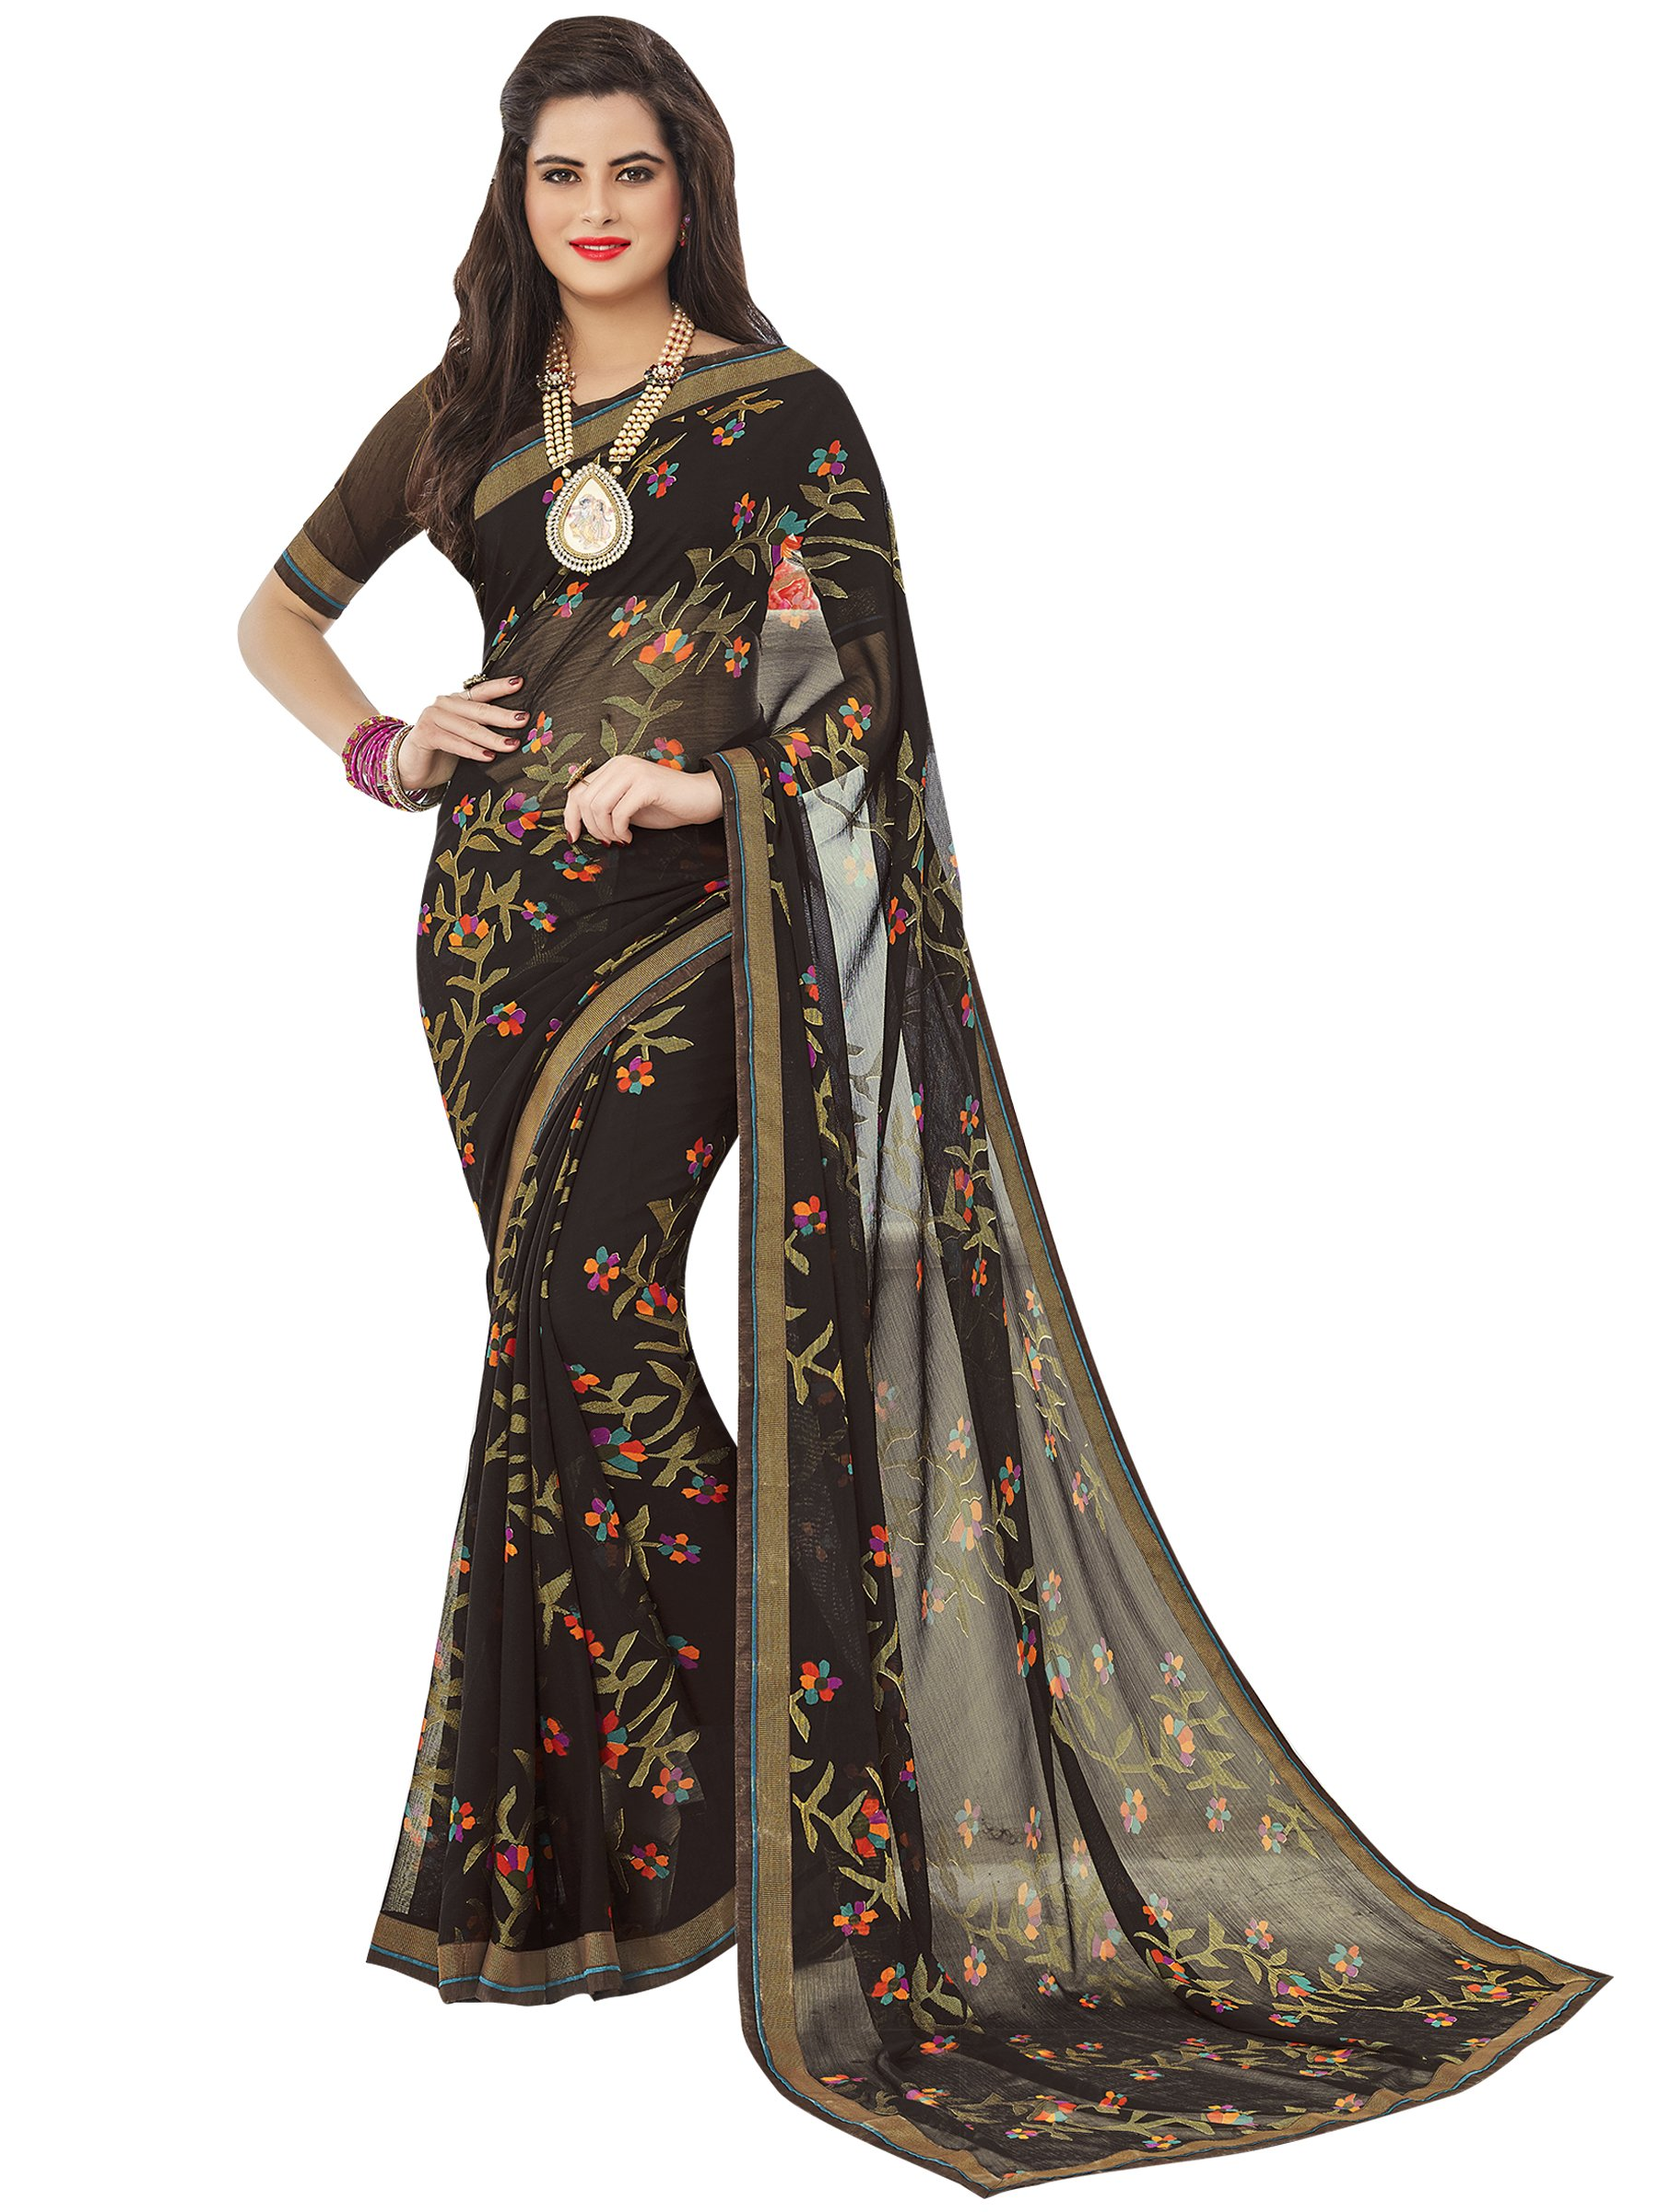 ELINA FASHION Saree Women Brown Chiffon Brasso Work Sarees